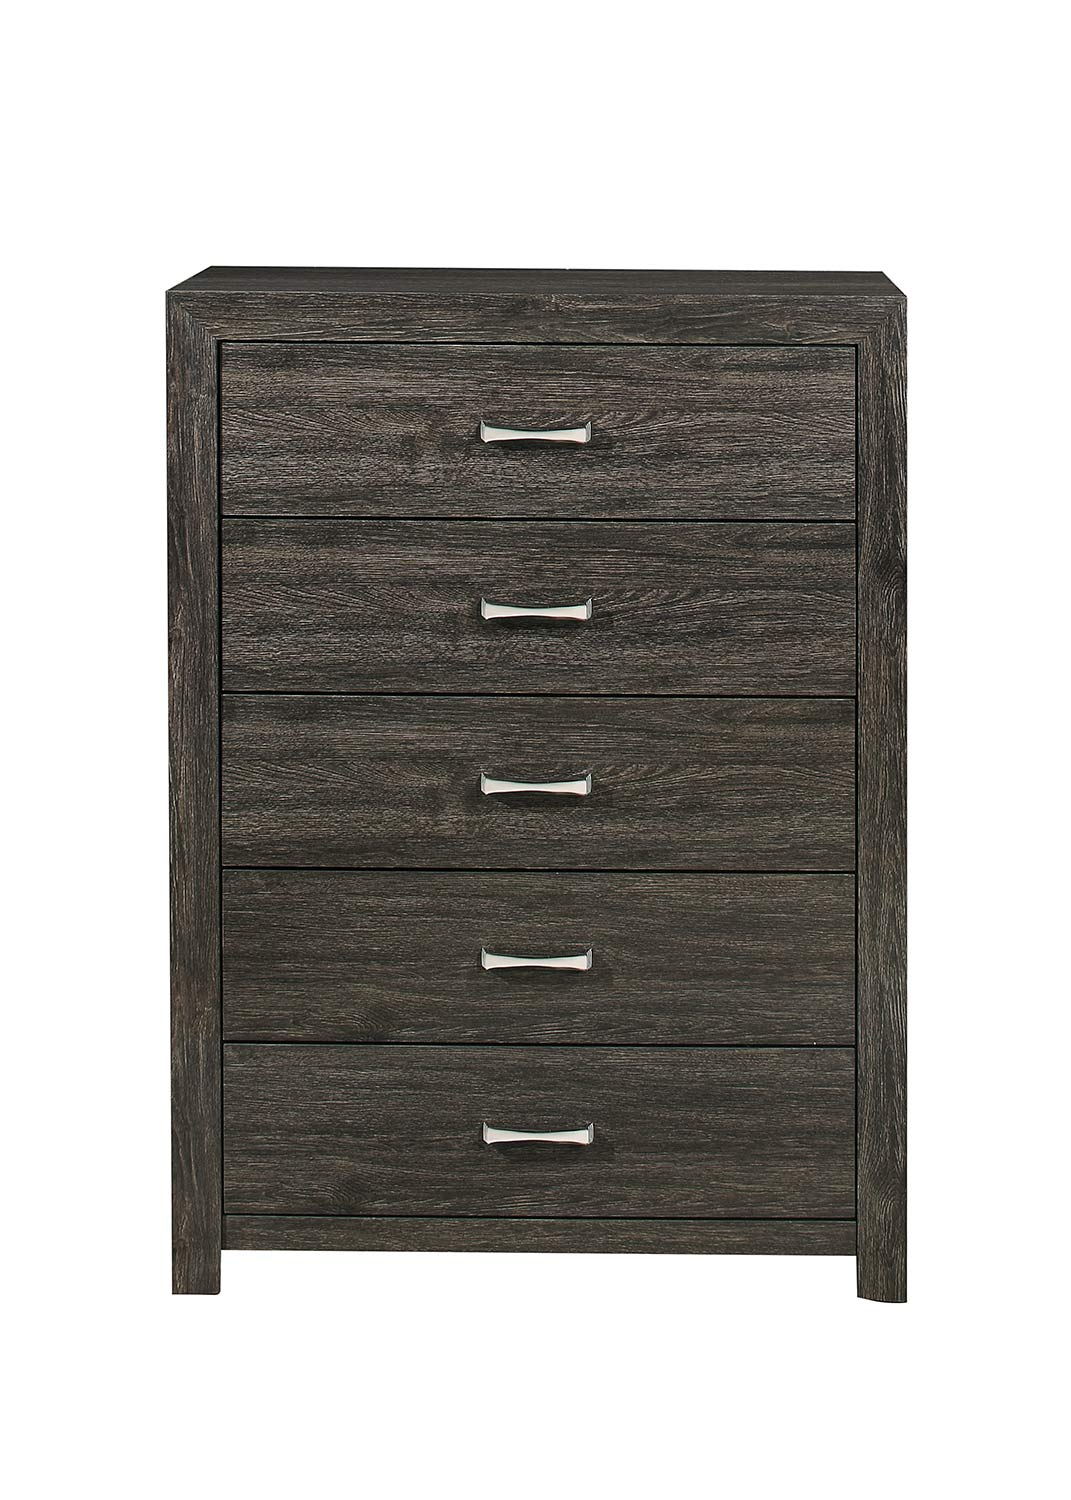 Homelegance Edina Chest - Brown-Gray